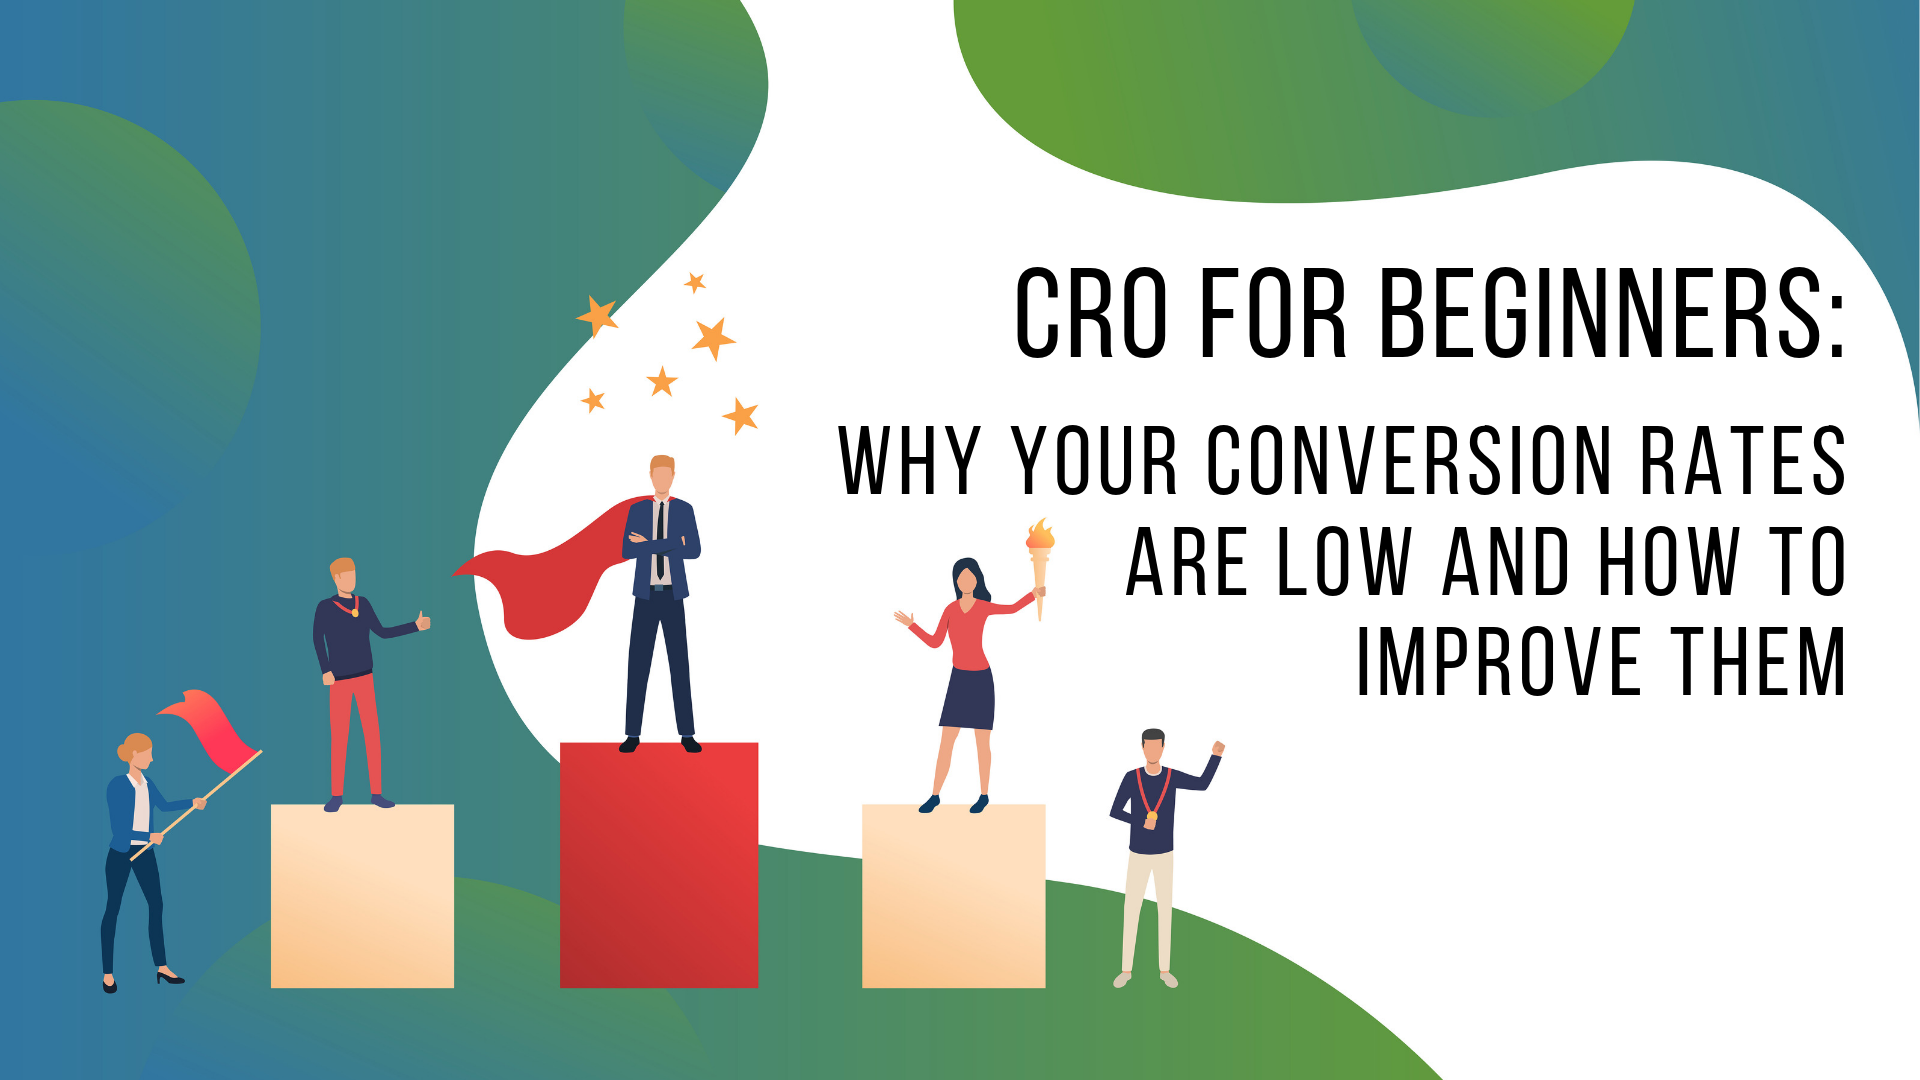 CRO for Beginners